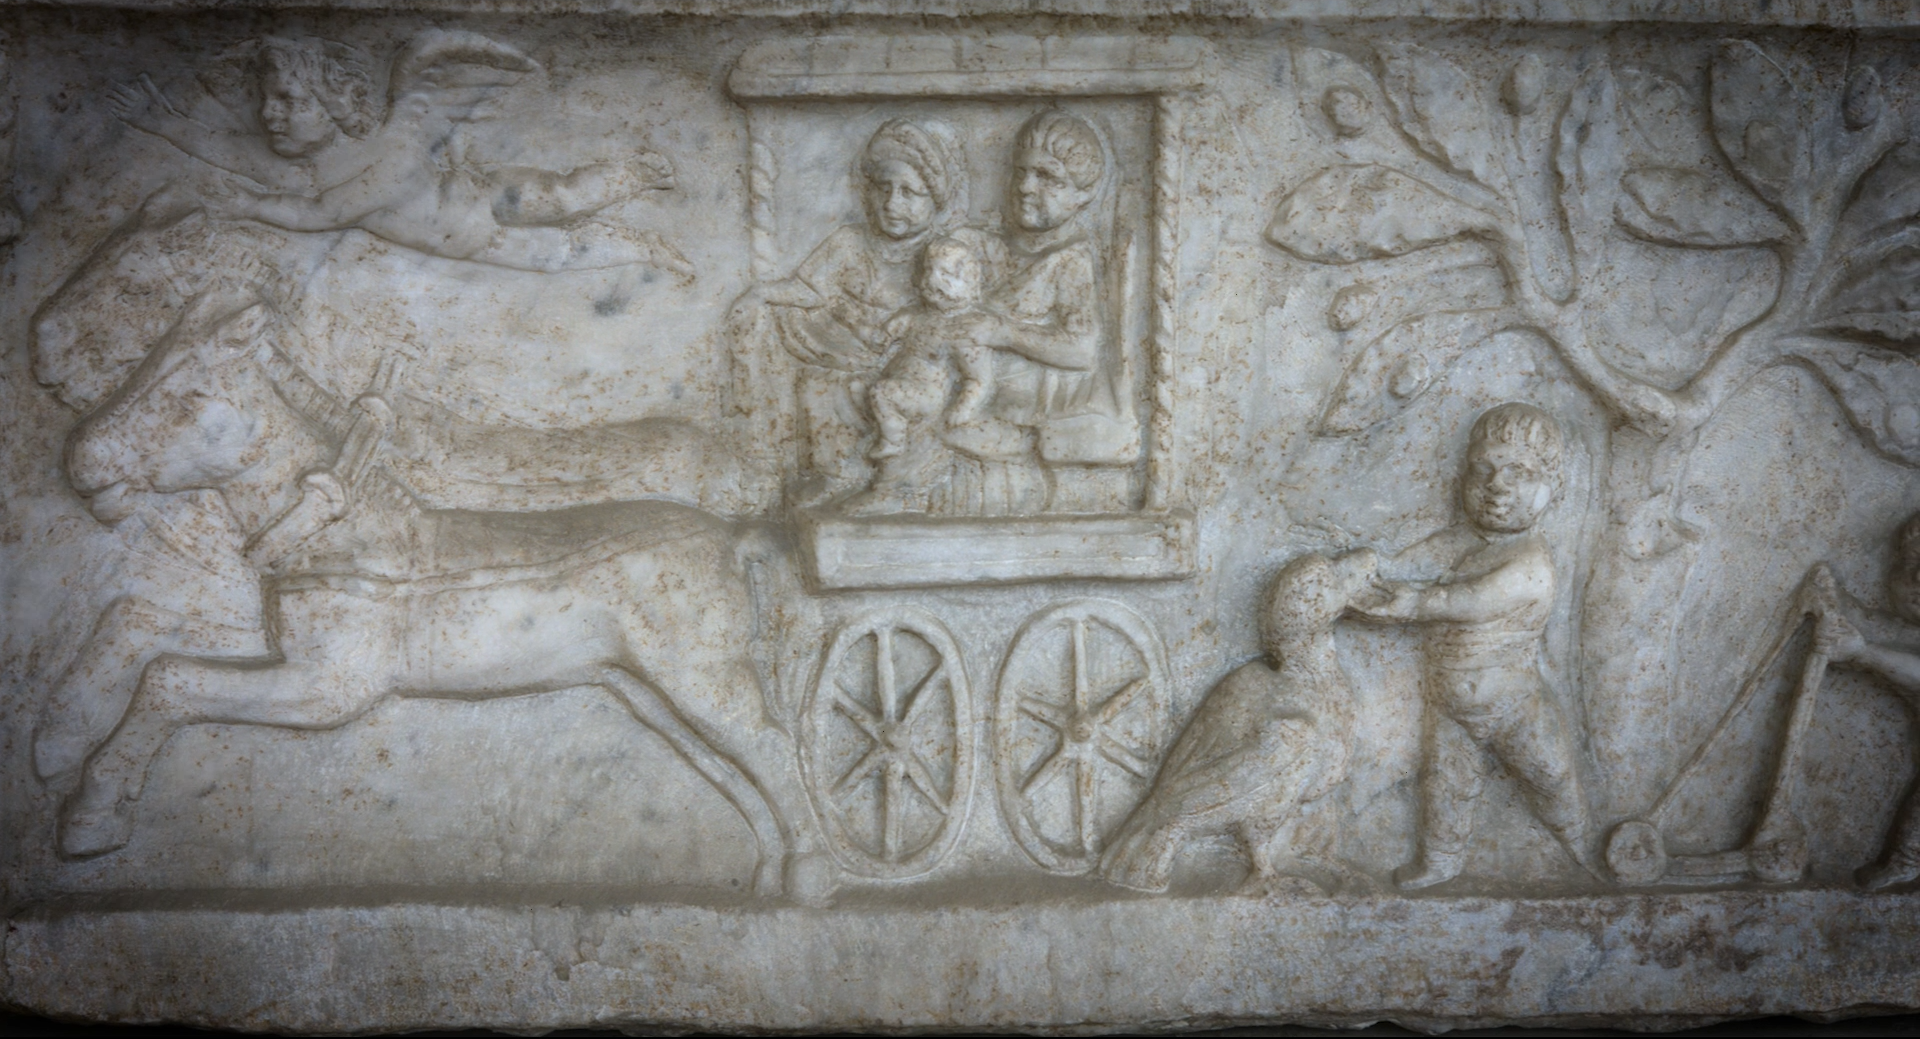 Detail of a marble relief showing figures in a horse drawn cart, and a boy playing with a goose.